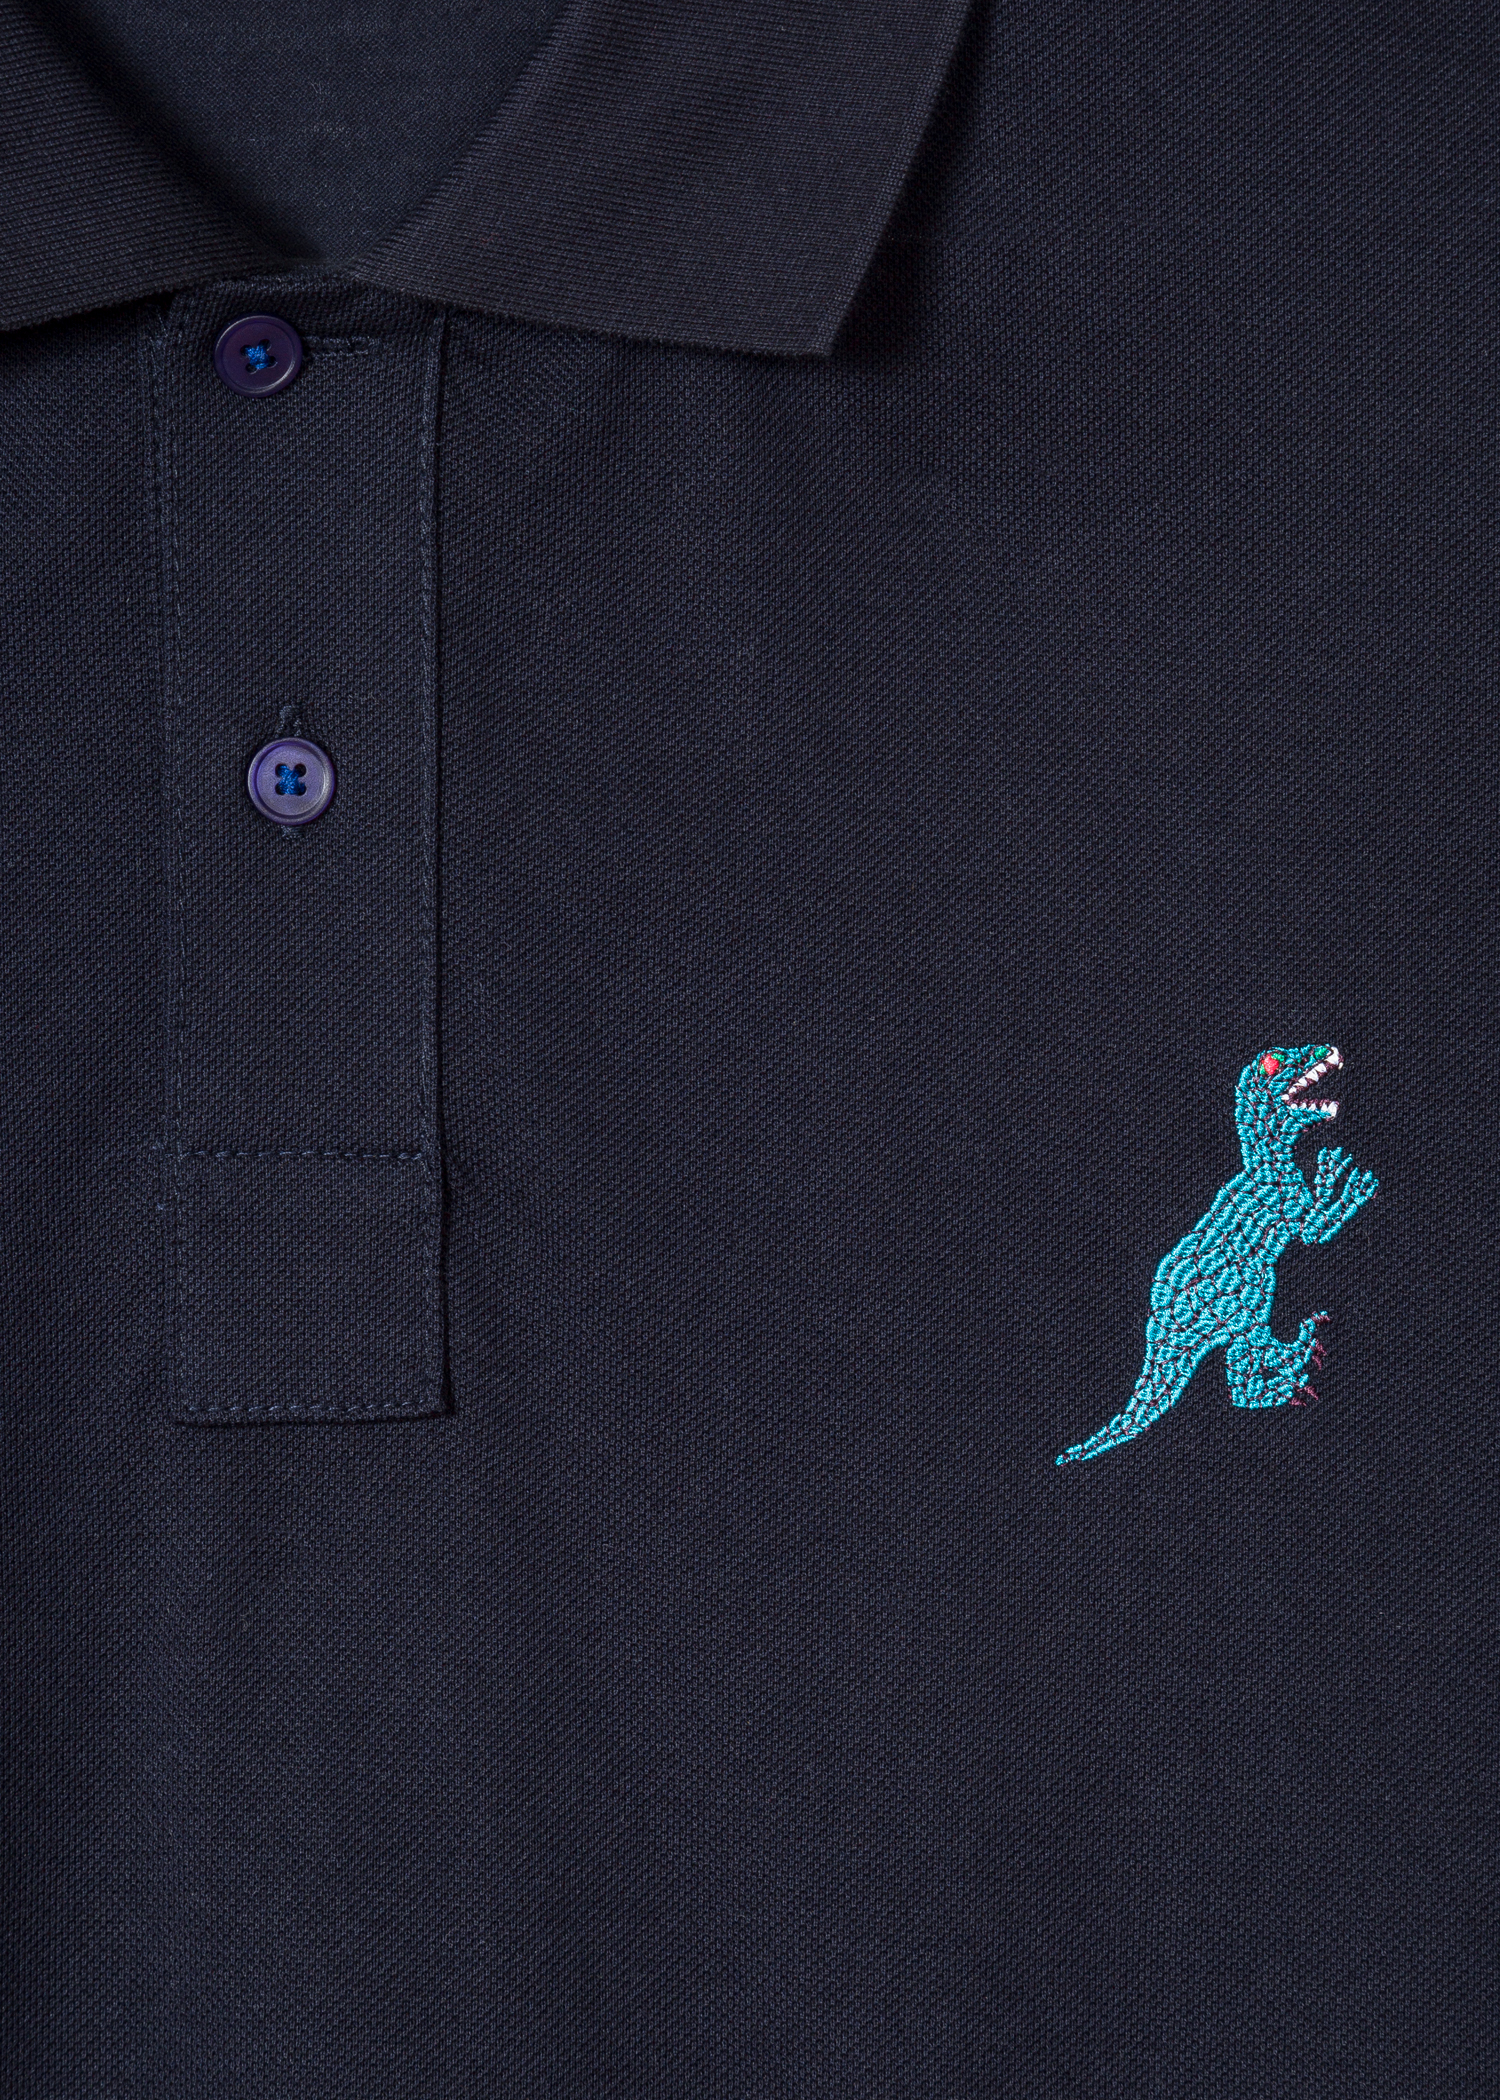 fd61c8d8f Detailed View - Men s Slim-Fit Dark Navy Embroidered  Dino  Polo Shirt Paul.  PS PAUL SMITH